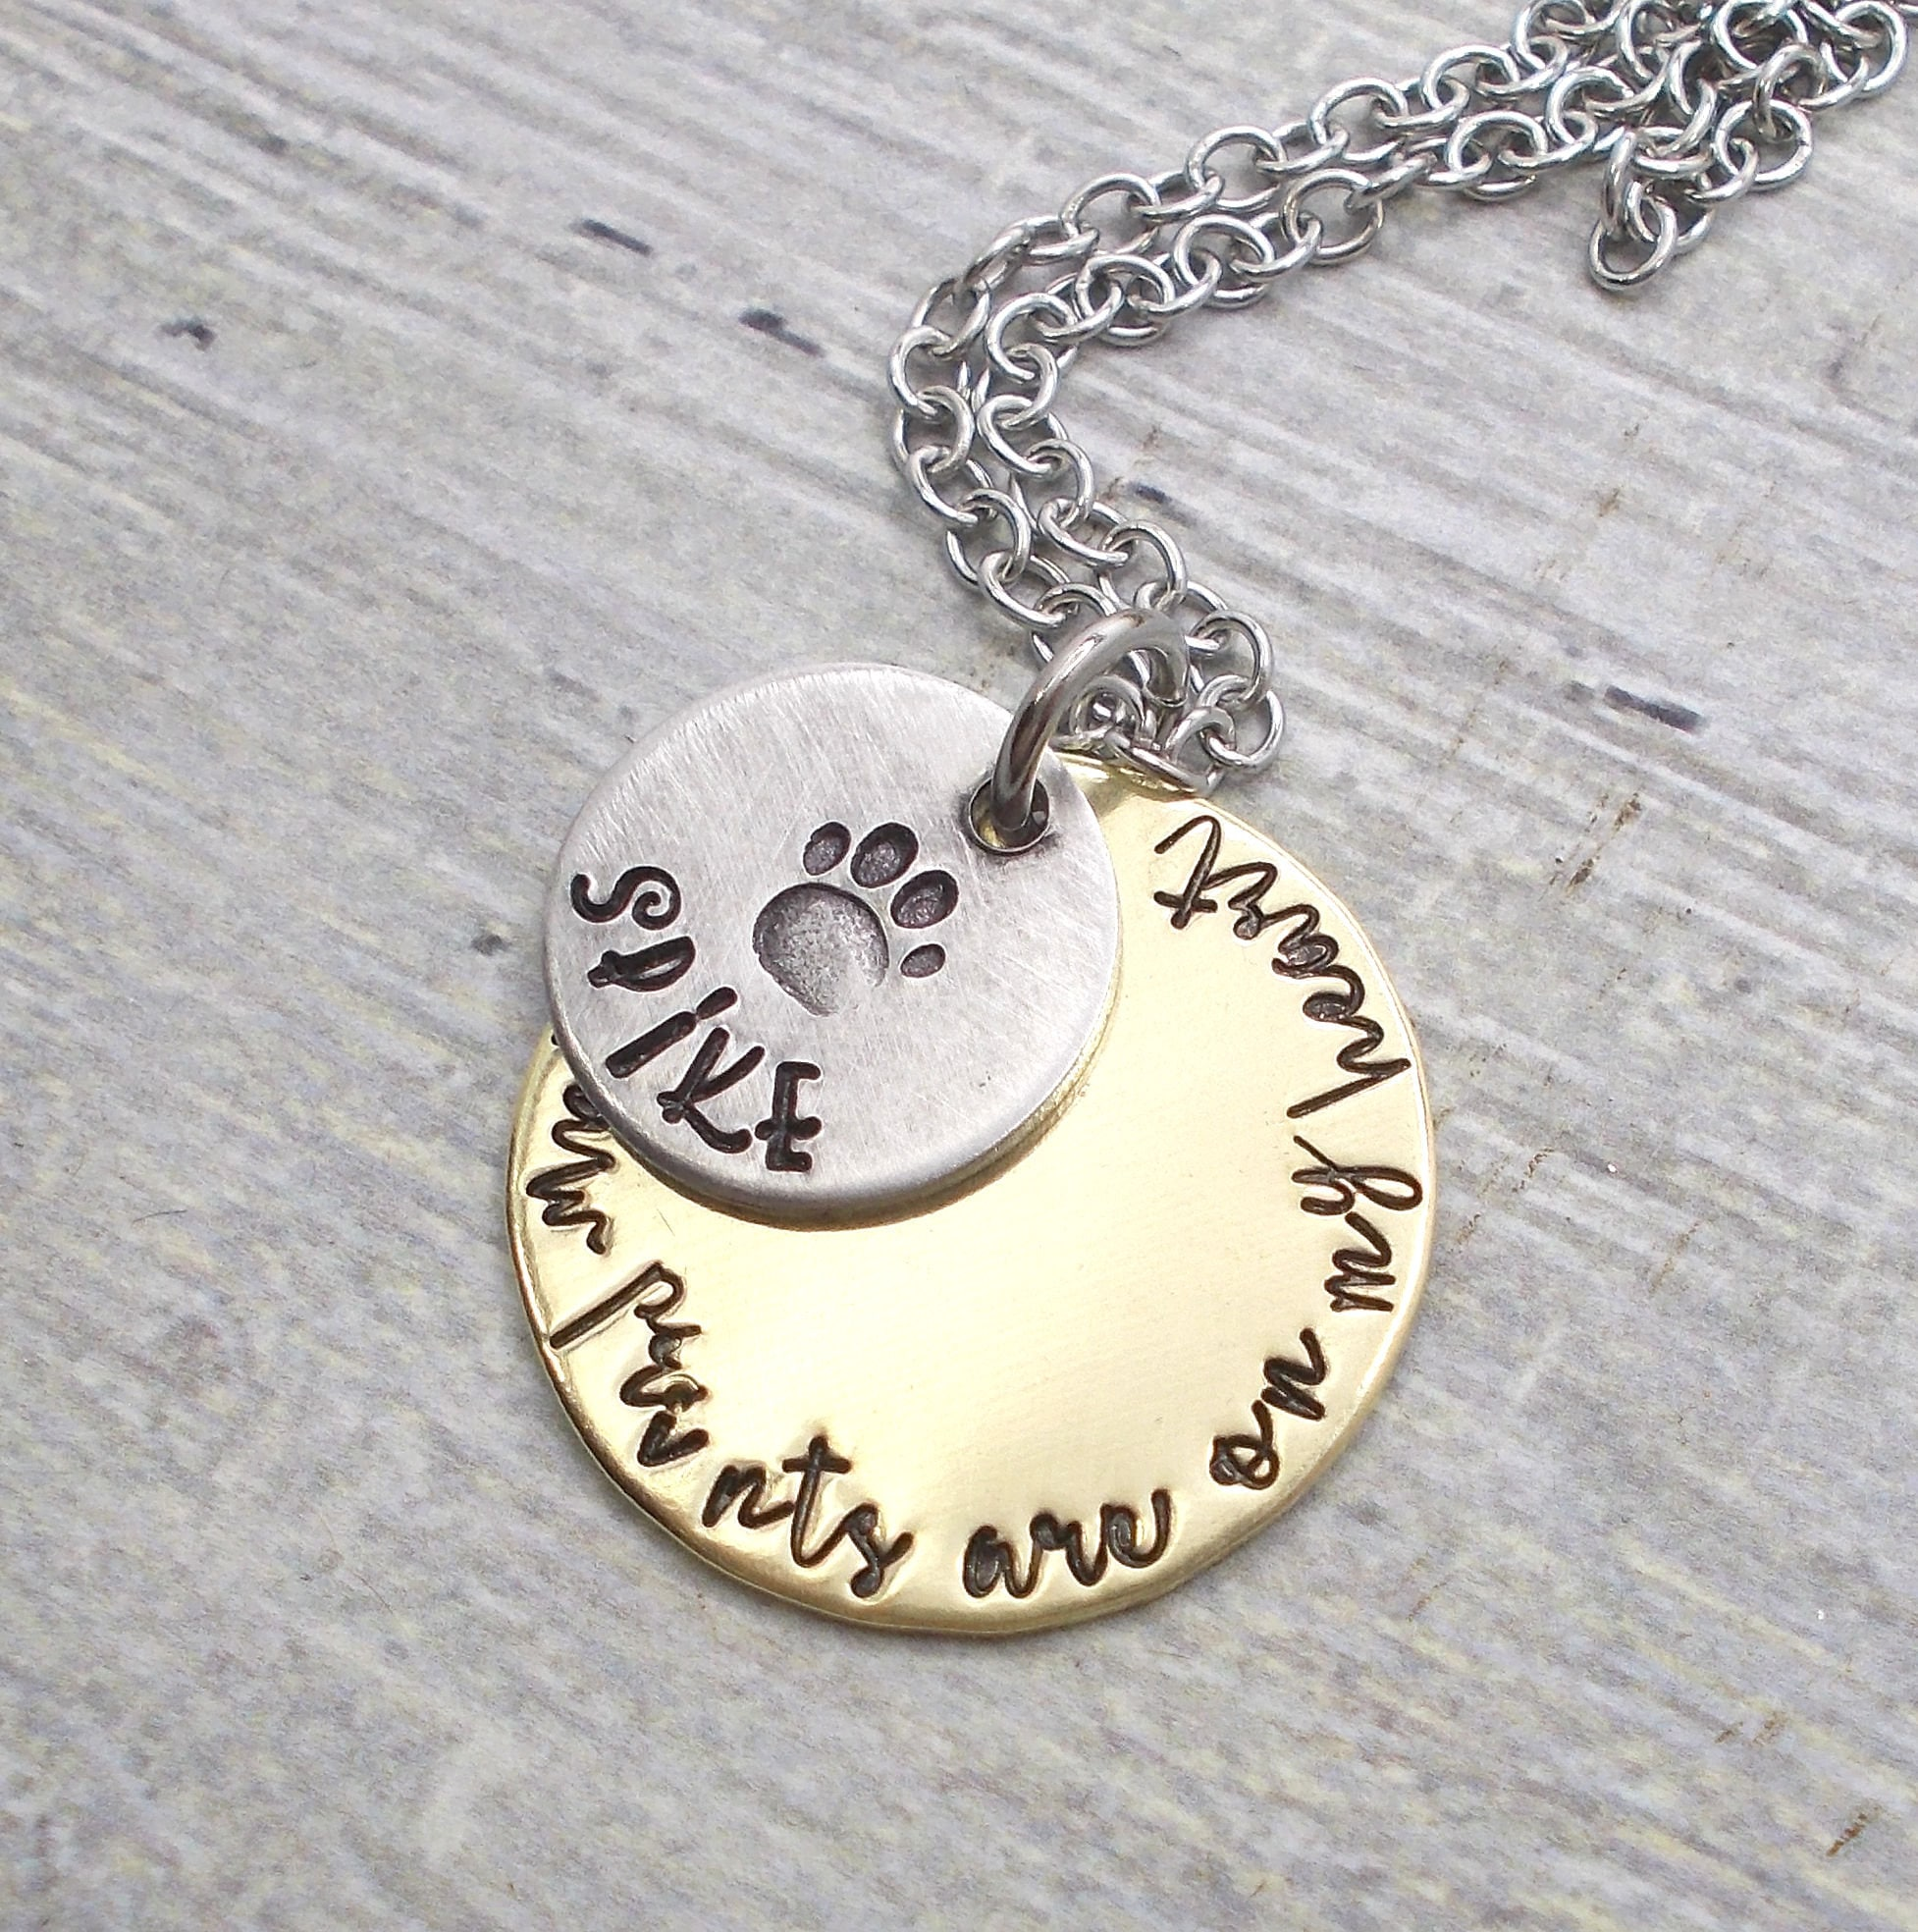 jewelry rememberance untitled mom in dad product memorial necklace of memory